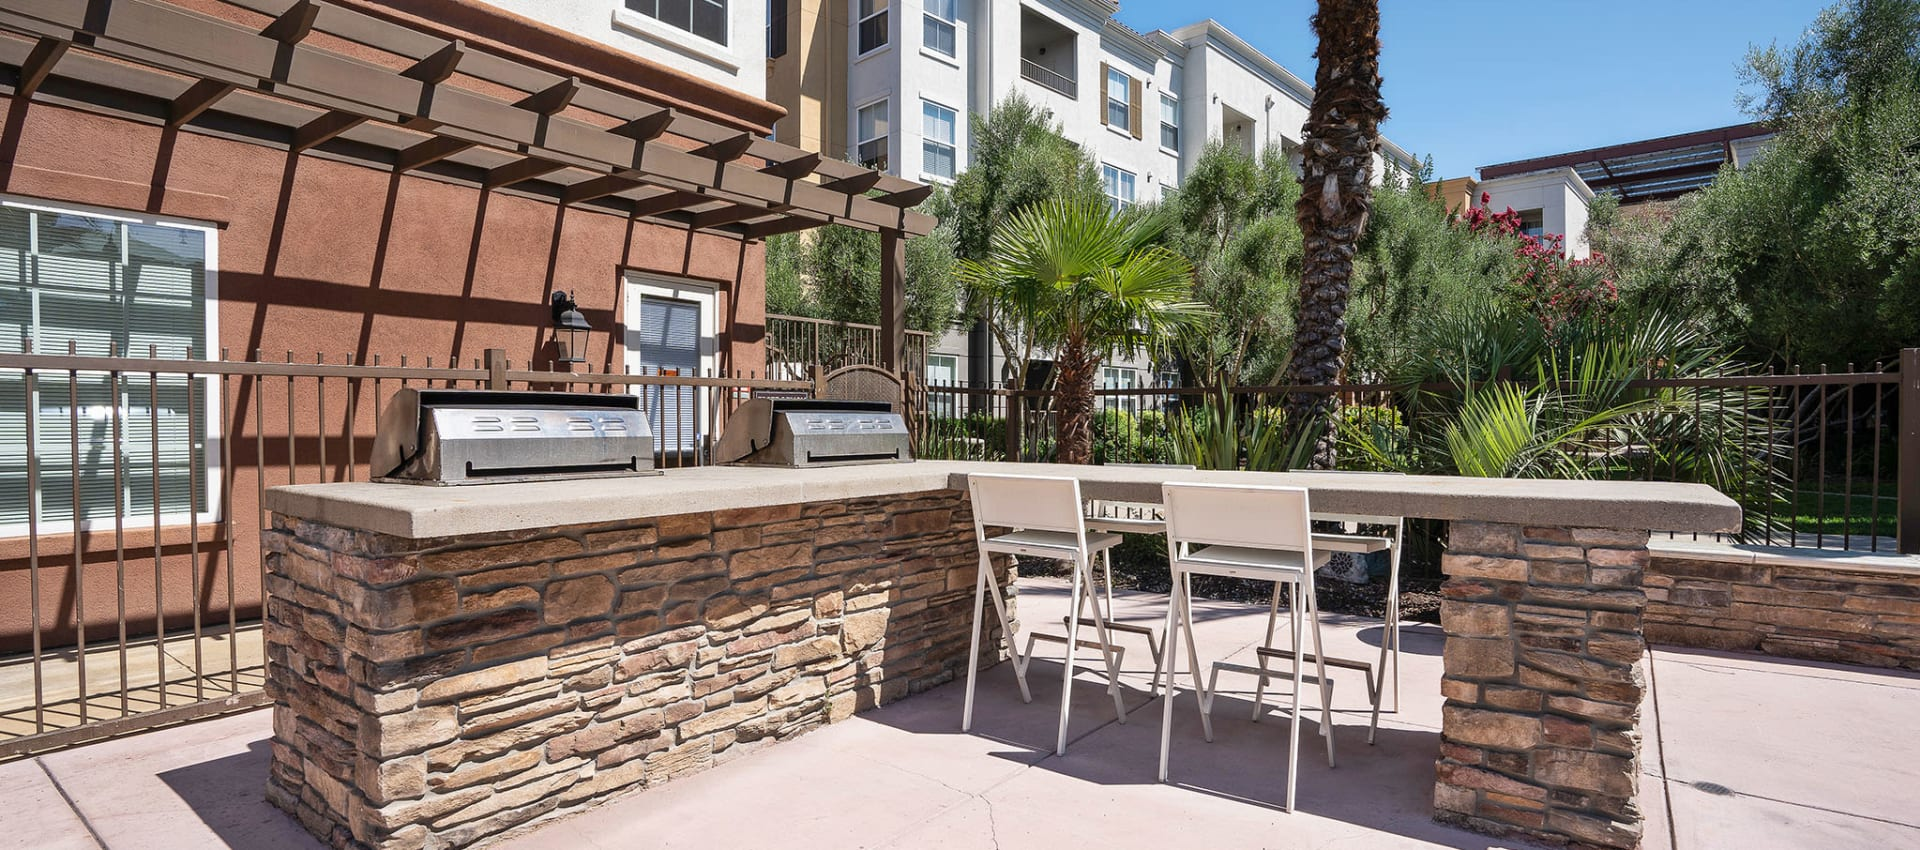 Outdoor Grilling Area at Park Central in Concord, California